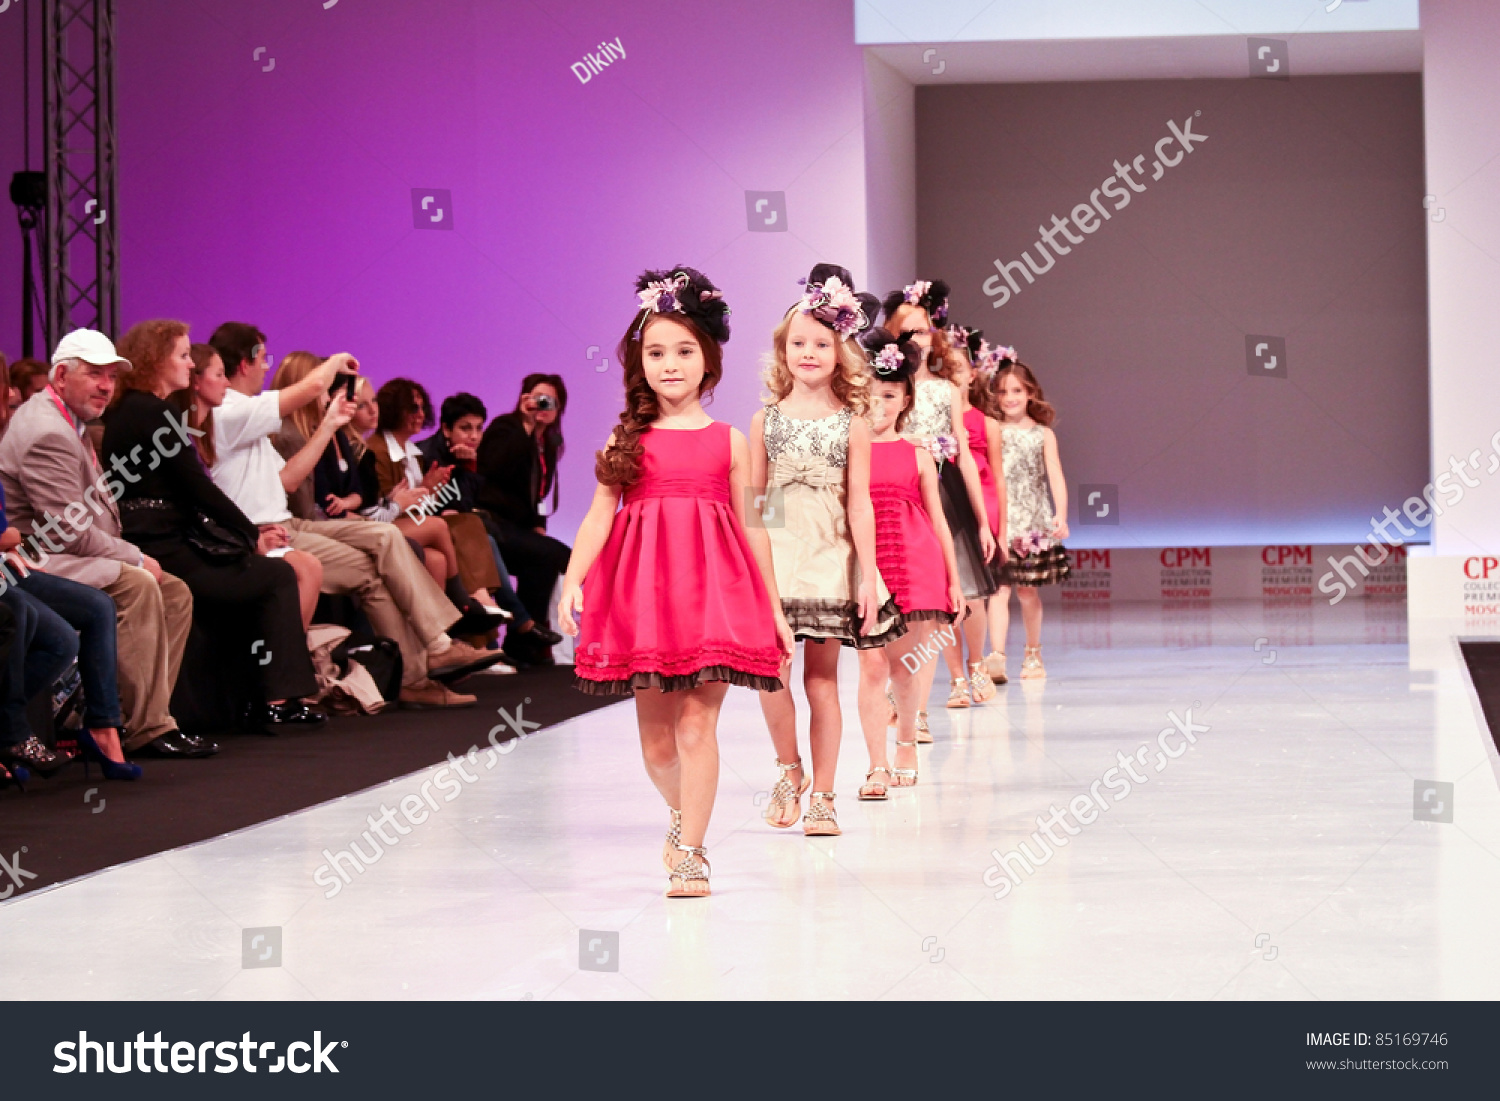 Moscow September 7 Barcarola Clothing Collection At The International Exhibition Of The